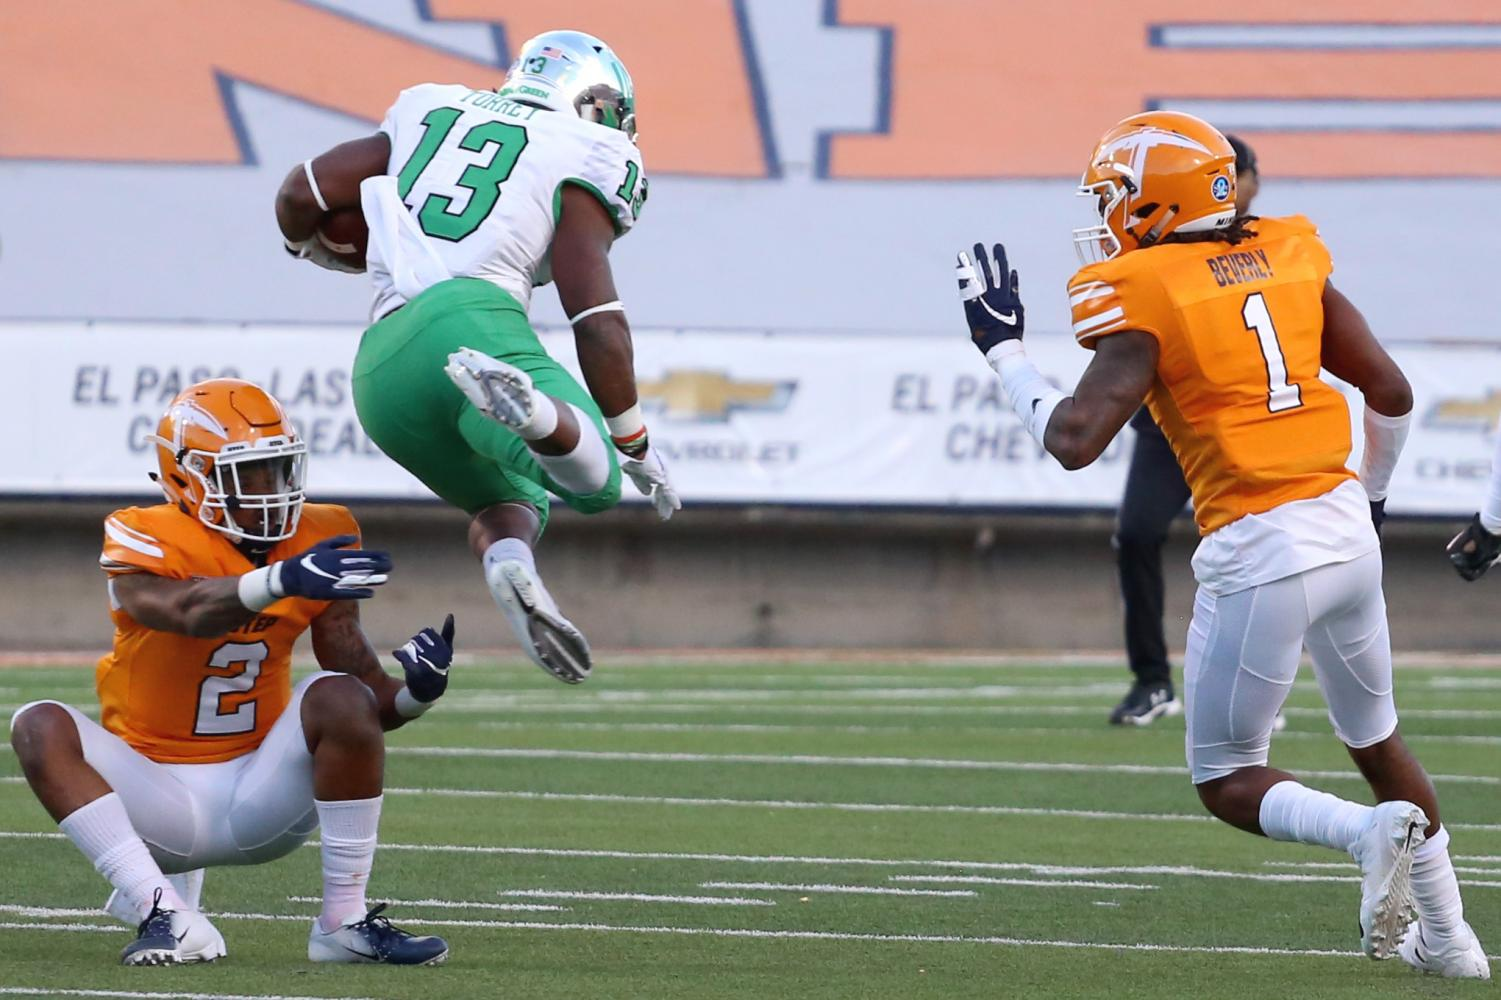 UNT+sophomore+running+back+Deandre+Torrey+goes+through+both+UTEP+senior+defensive+back+Kalon+Beverly+and+junior+defensive+back+Michael+Lewis.+